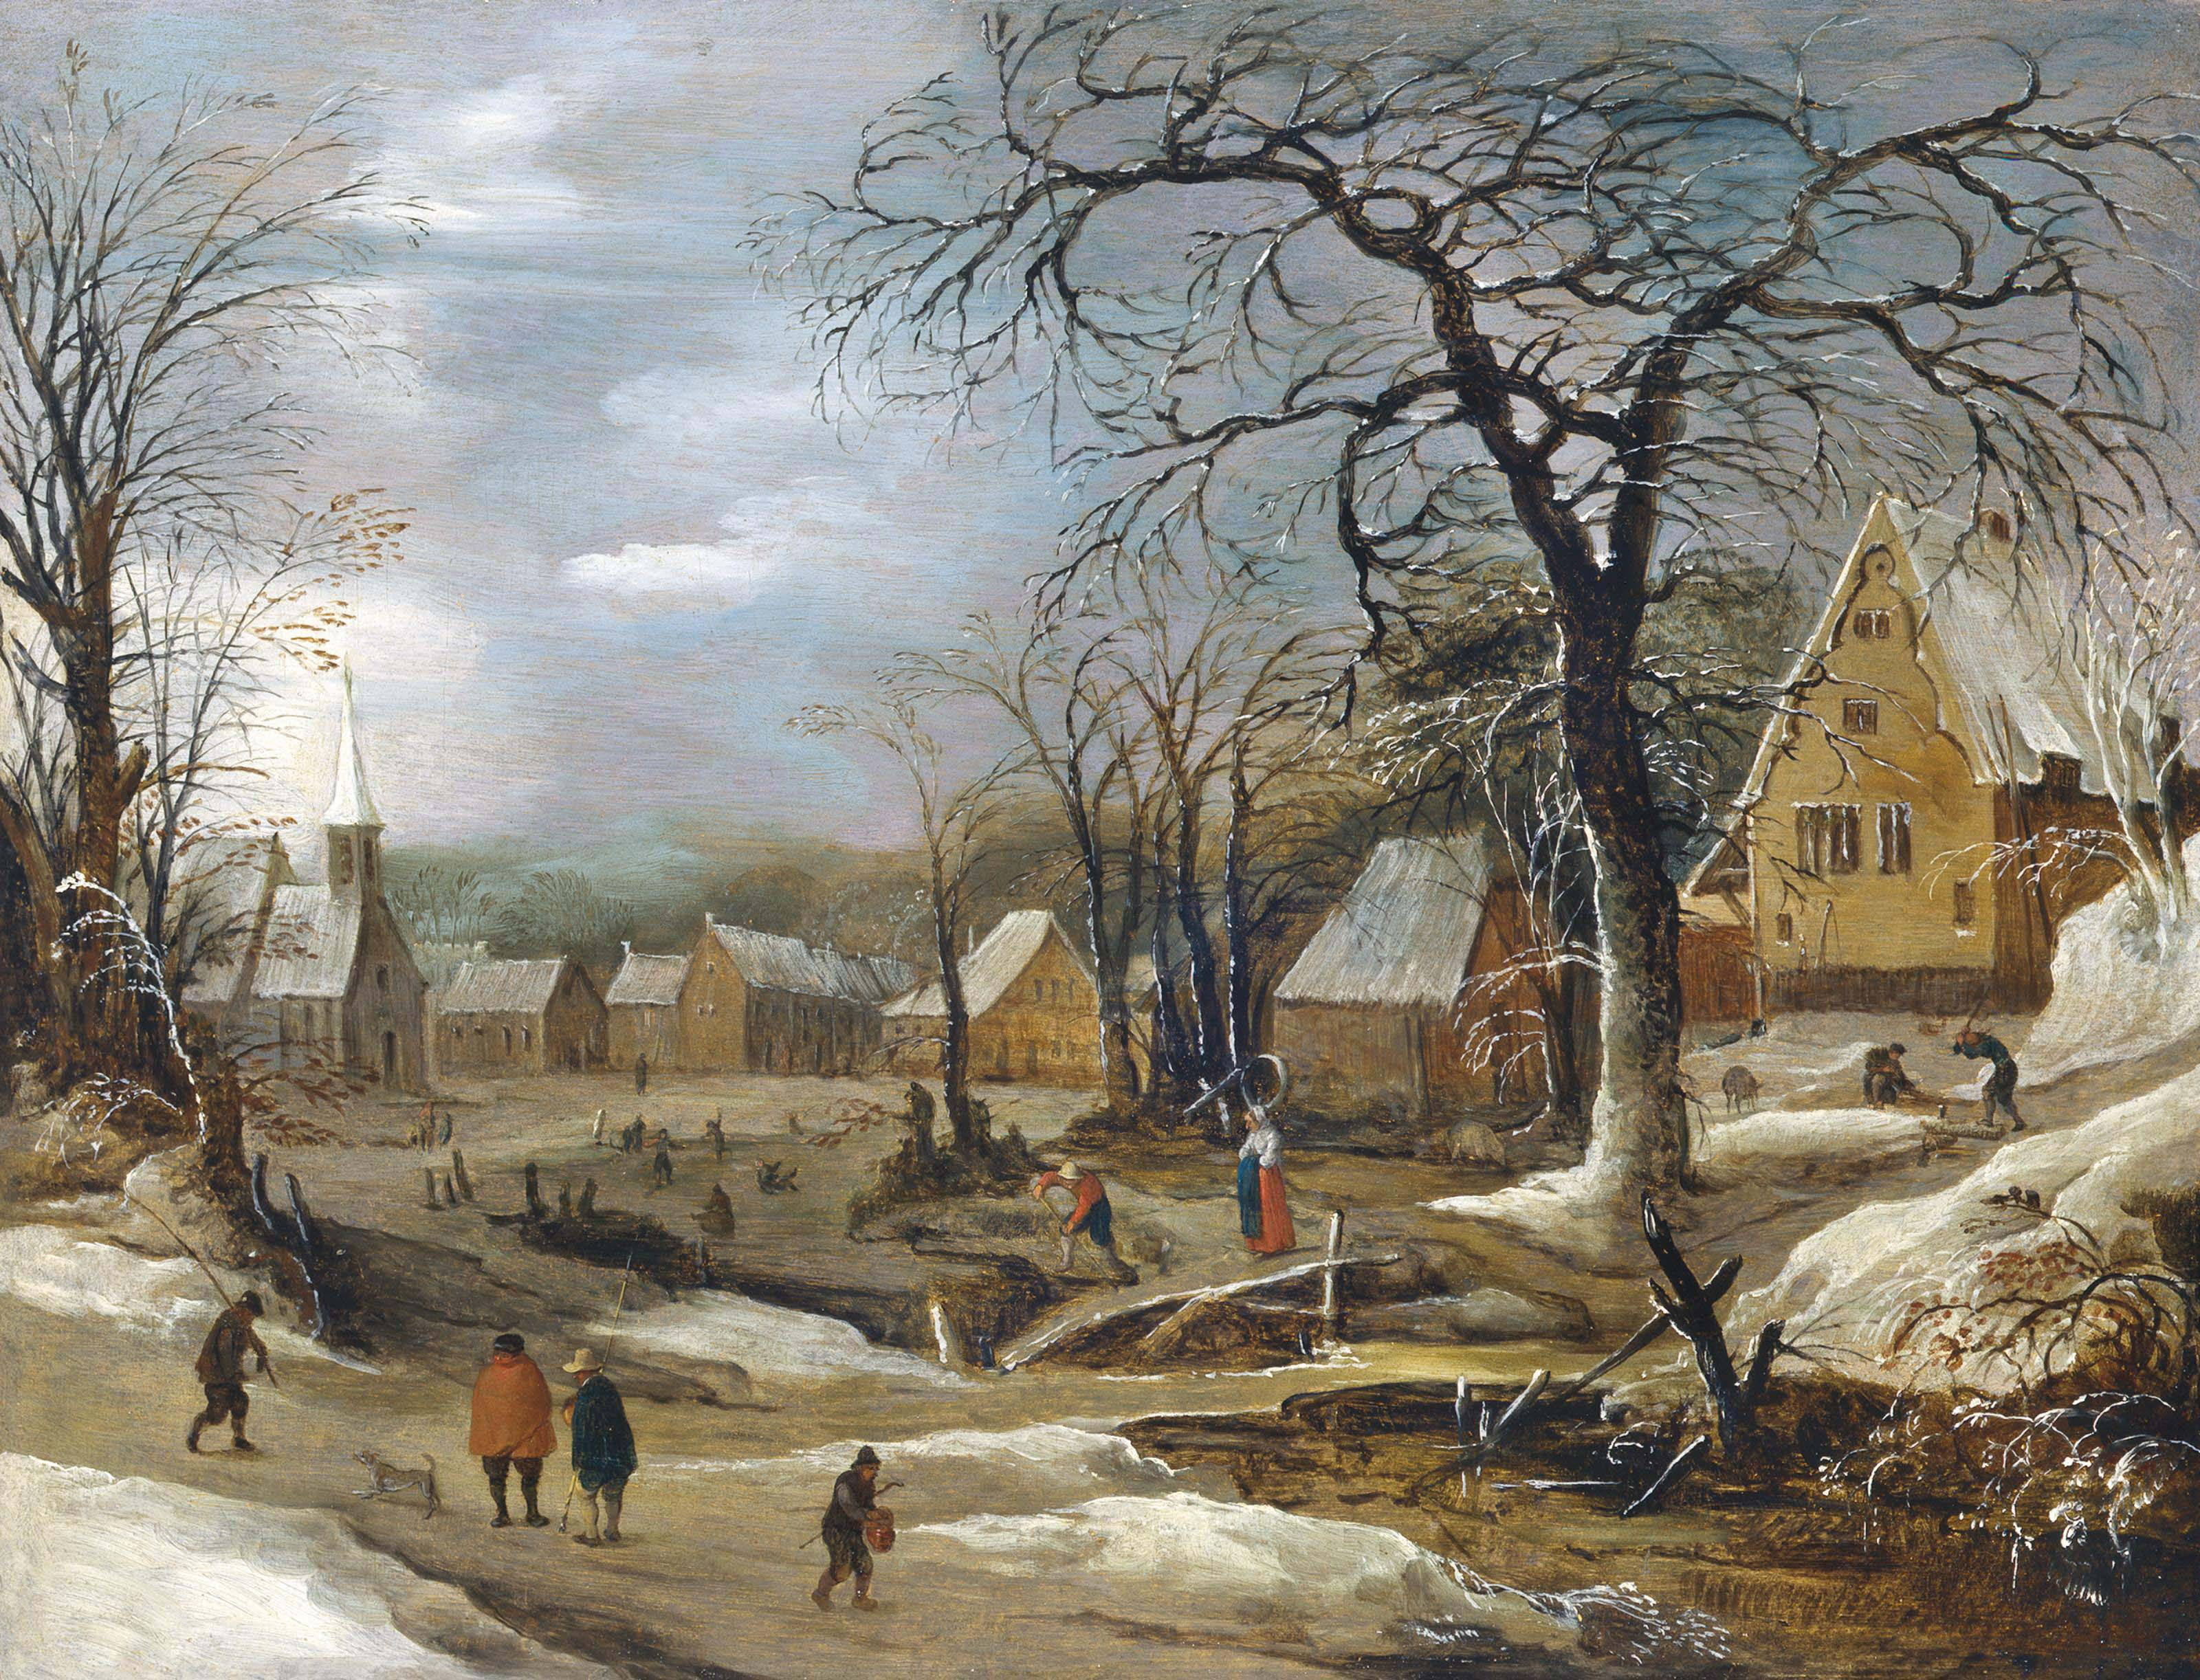 A winter landscape with figures by a frozen river in a village